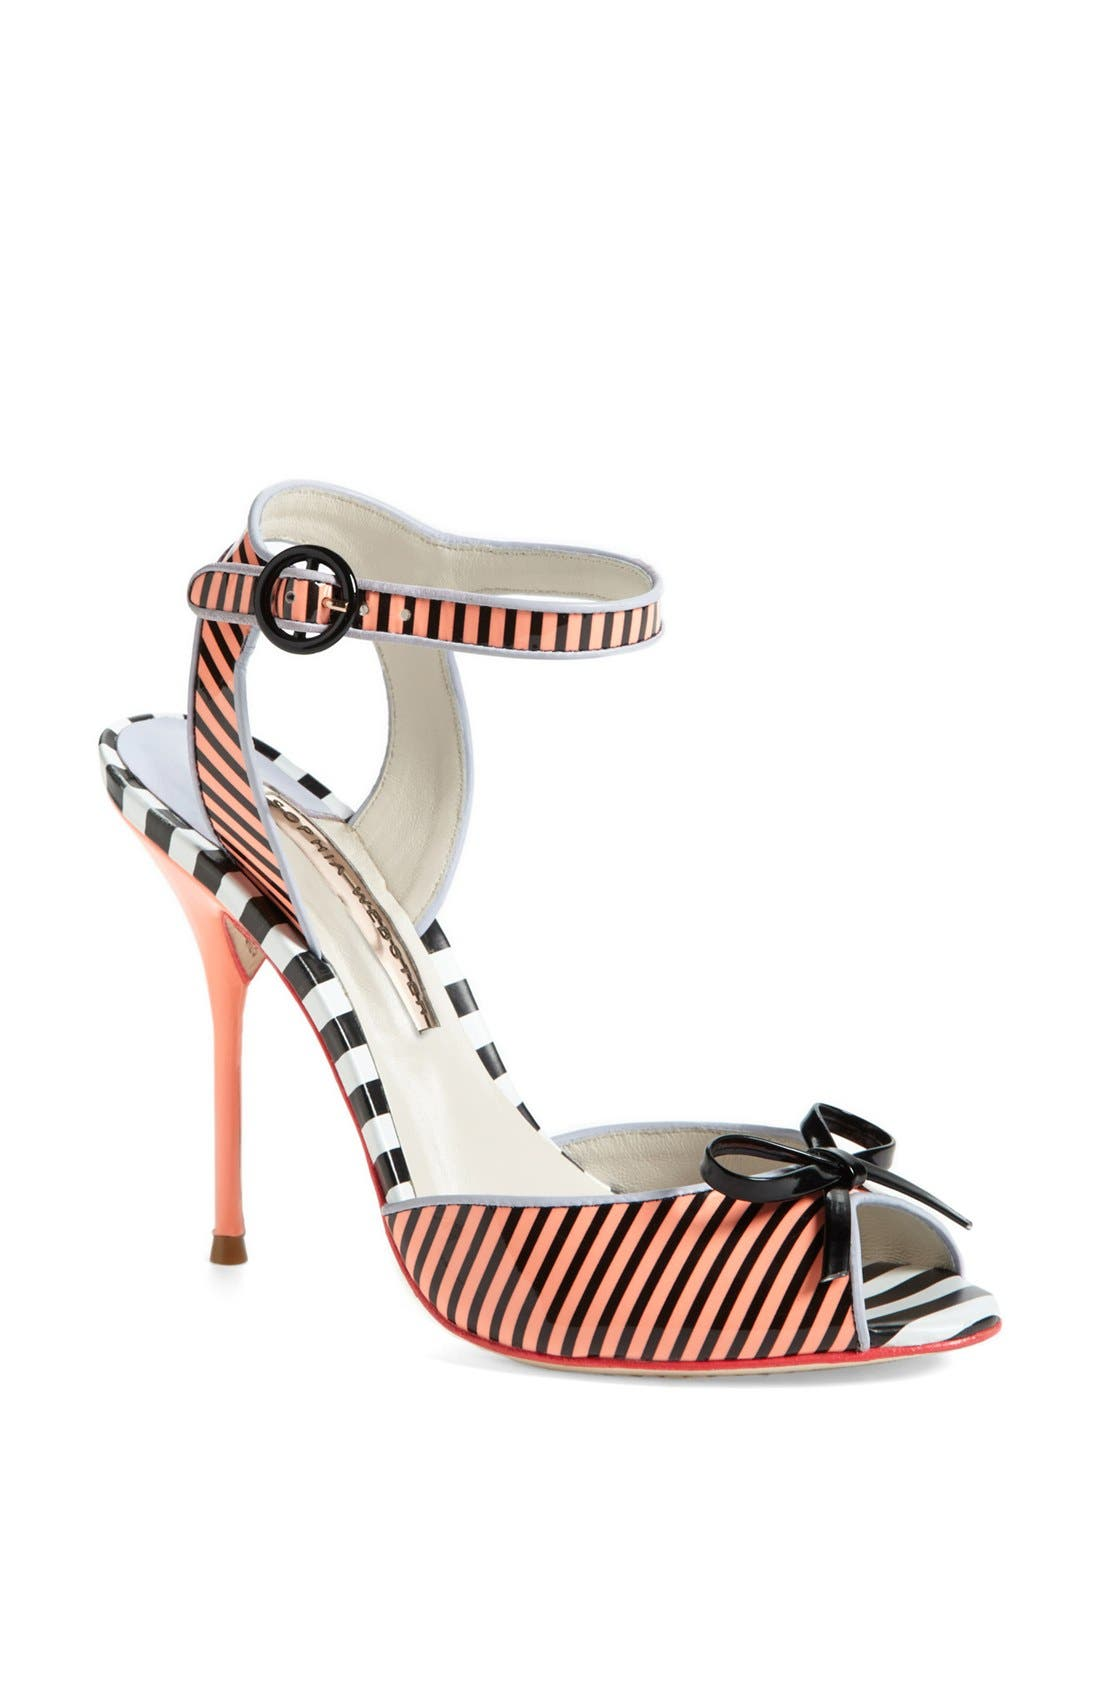 Alternate Image 1 Selected - Sophia Webster Footwear 'Lula 11' Sandal